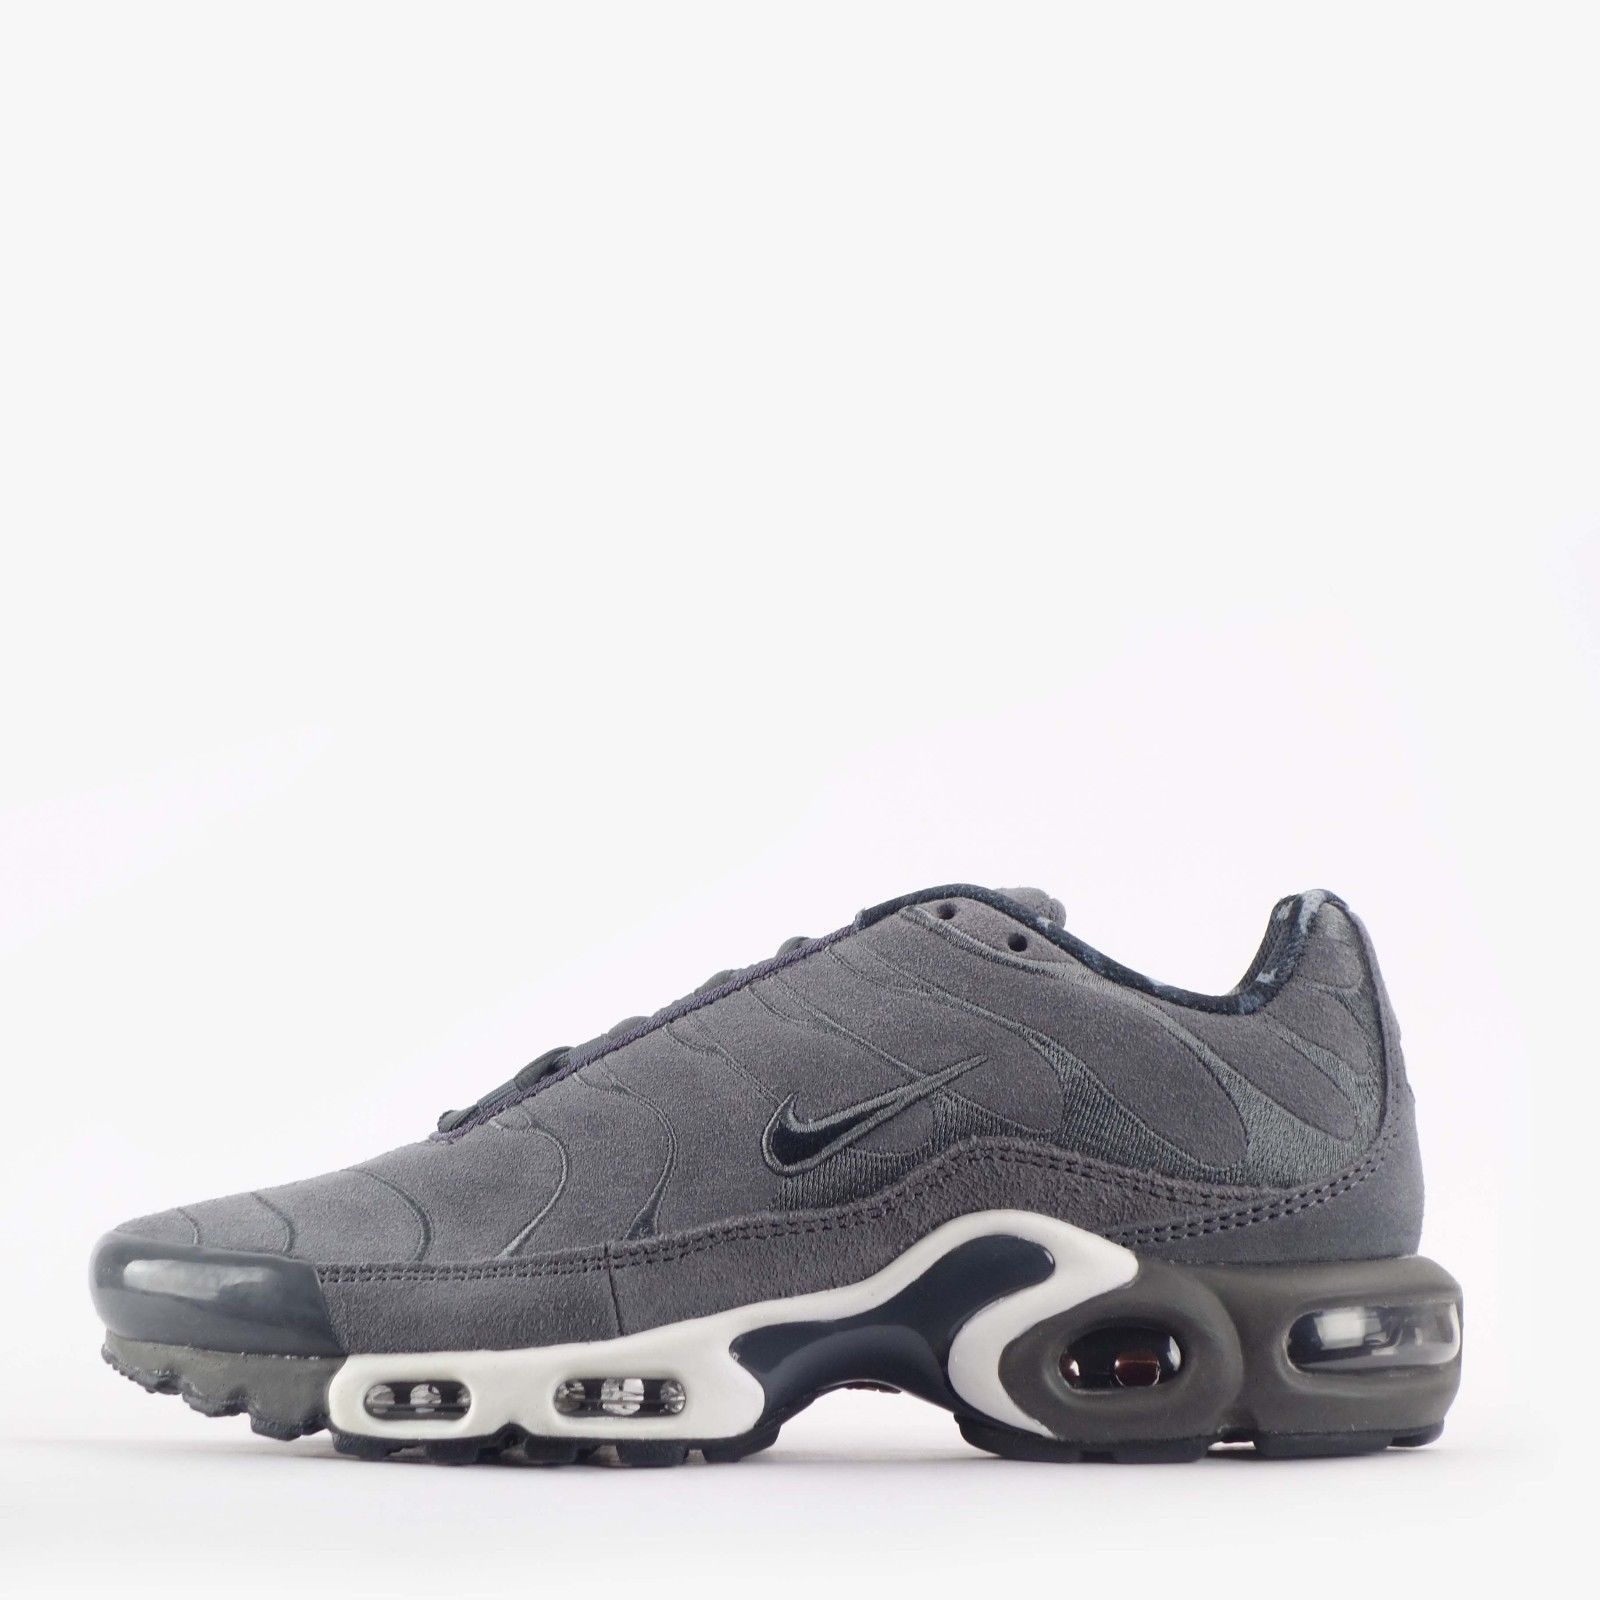 the best attitude 4d104 a12c5 Nike Air Max Plus Premium Tuned TN Suede Mens Shoes In Dark Grey in  Clothes, Shoes   Accessories, Men s Shoes, Trainers   eBay